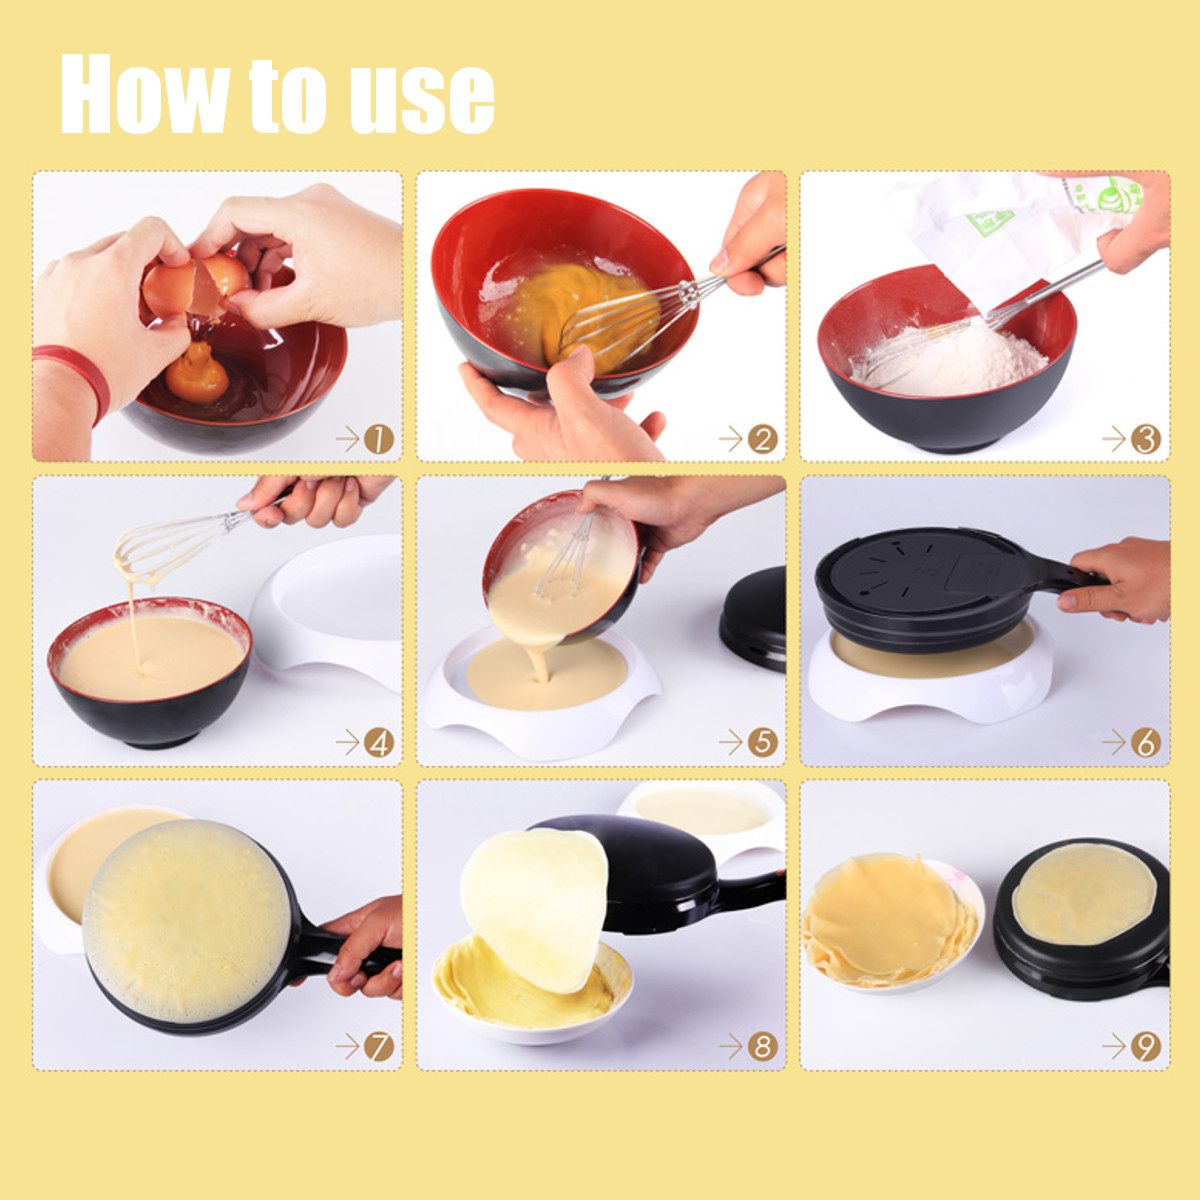 3Pcs / Set Kitchen Electric Griddle Pancake Baking Crepe Maker Pan Pizza Machine Frying Pan Kitchen Electric Appliance